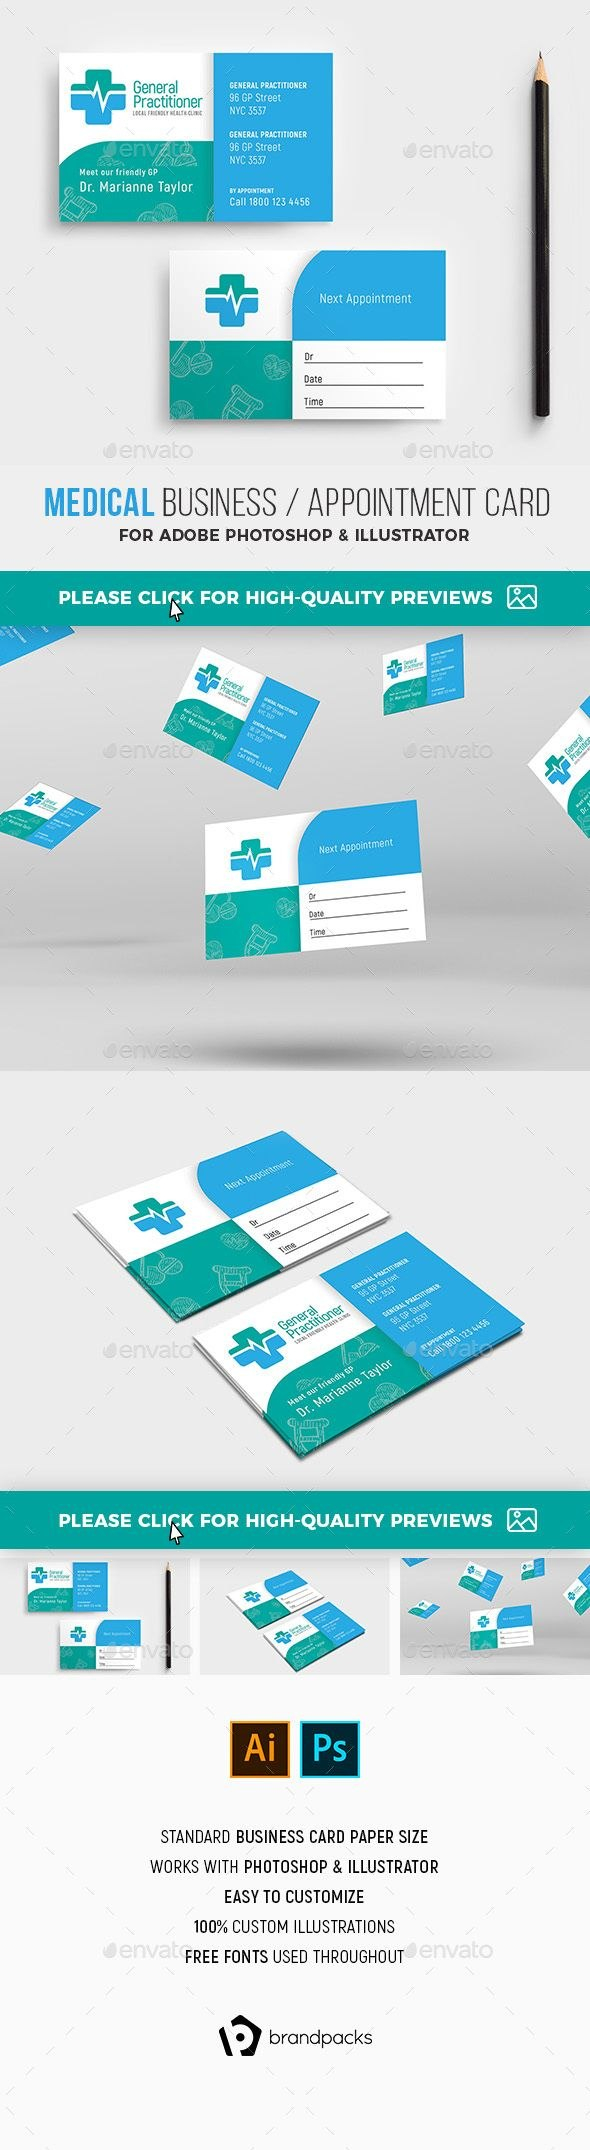 A Business Card Size Template In Photoshop  Illustrator Format For Pertaining To Business Card Size Photoshop Template